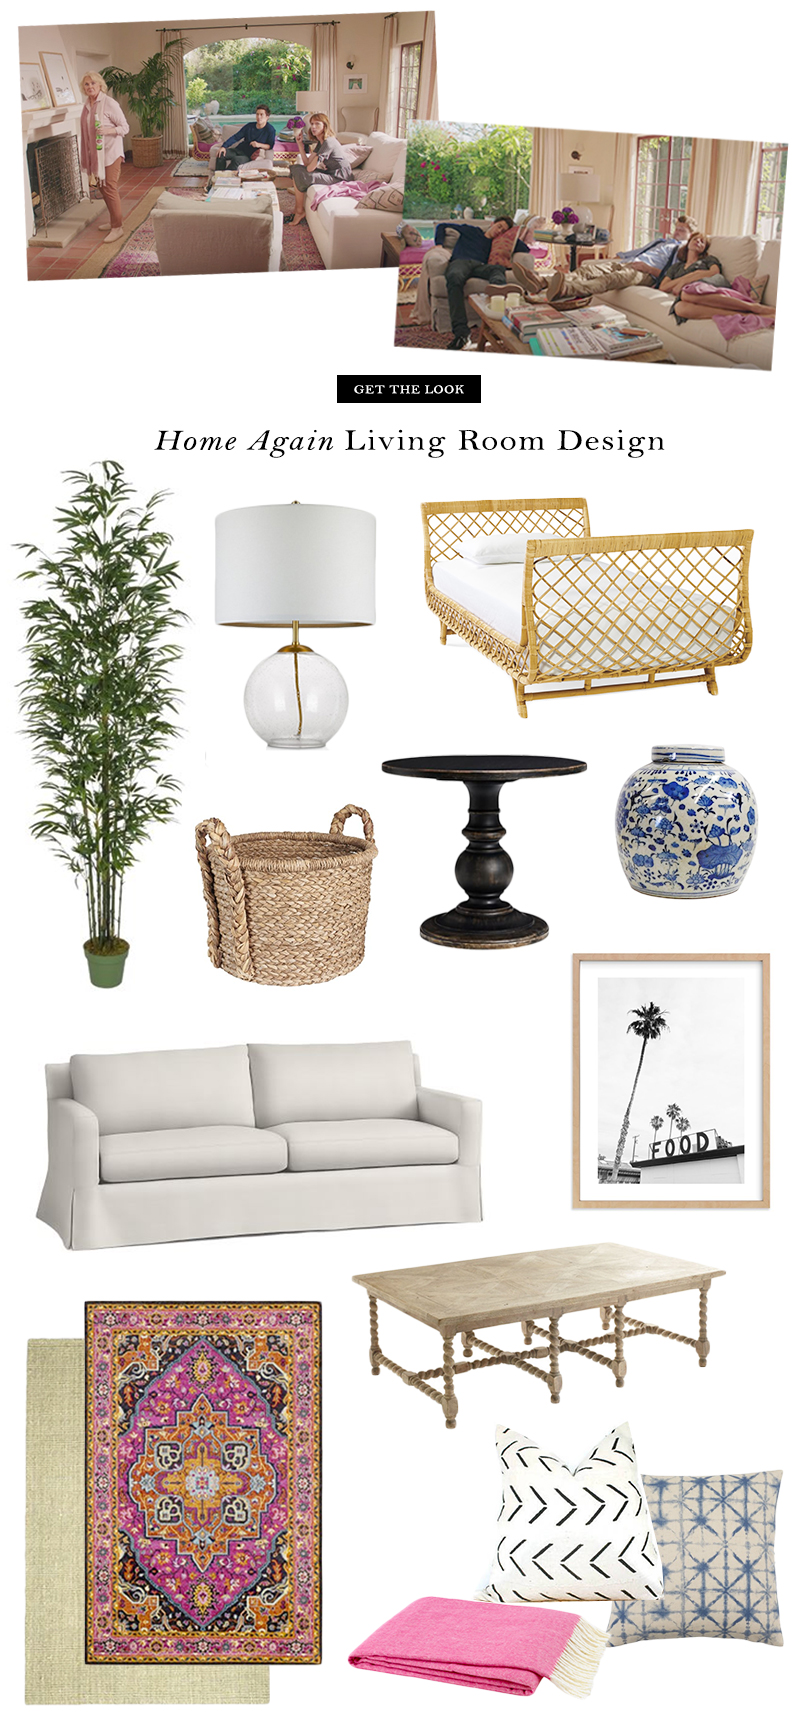 Set Designs of the New Nancy Meyers Movie Home Again The